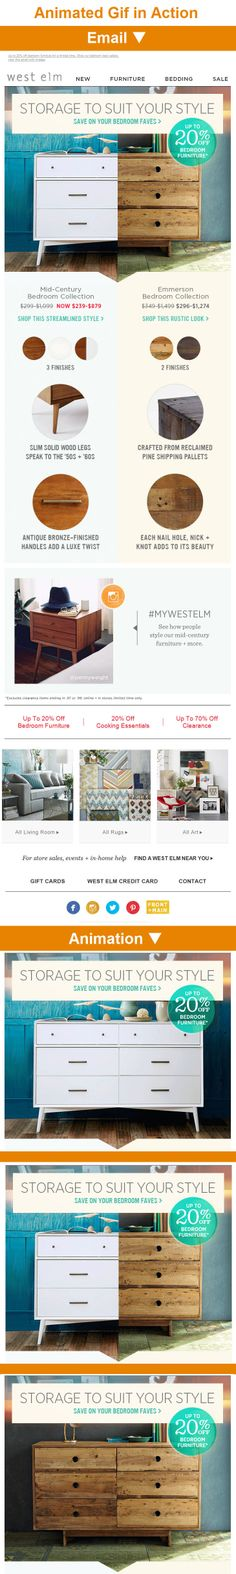 West Elm >> sent 3/26/14 >> Retro or rustic? Save on your storage style... >> Great animation above the fold not only gets your attention but highlights the contrast of styles set up in the catchy subject line. After promoting the sale, the graphic layout subtly divides and details the features of the products. Plus, there's a nice social plug with a unique Instagram callout at the bottom. —Ryan Alvis, Design Consultant, Salesforce ExactTarget Marketing Cloud